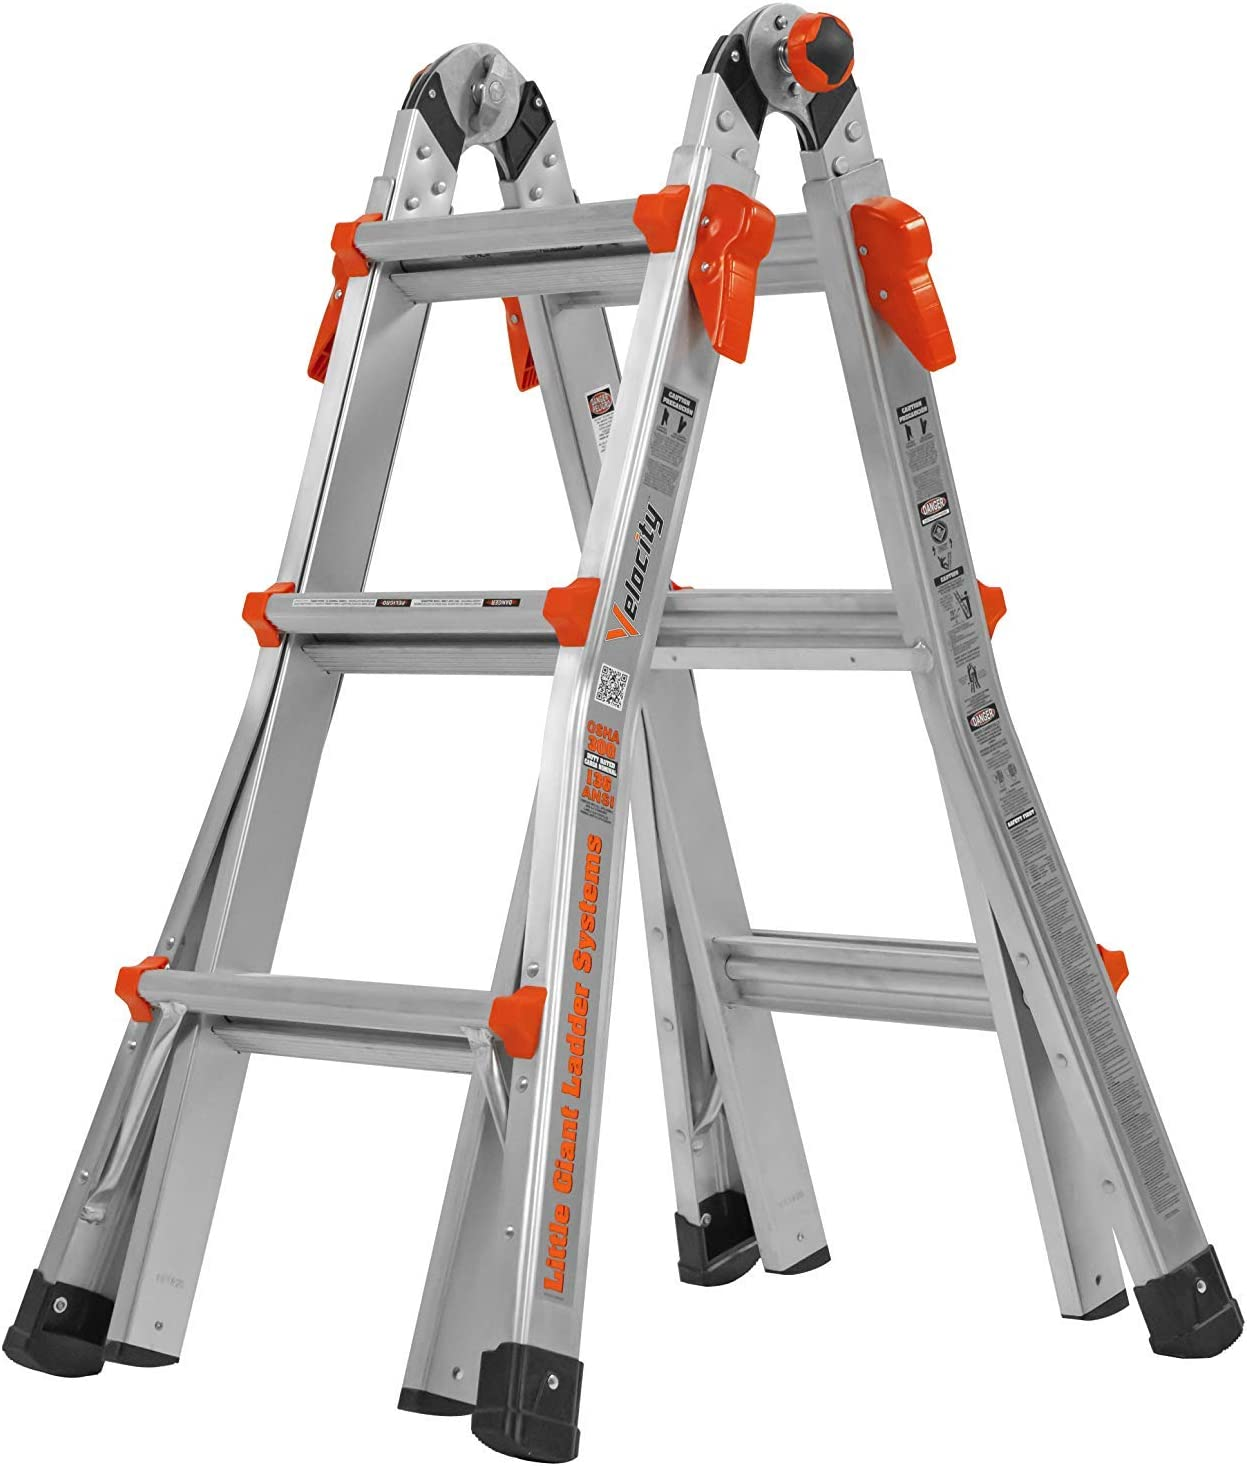 Little Giant 13-Foot Velocity Multi-Use Ladder, 300-Pound Duty Rating, 15413-001 (Renewed)